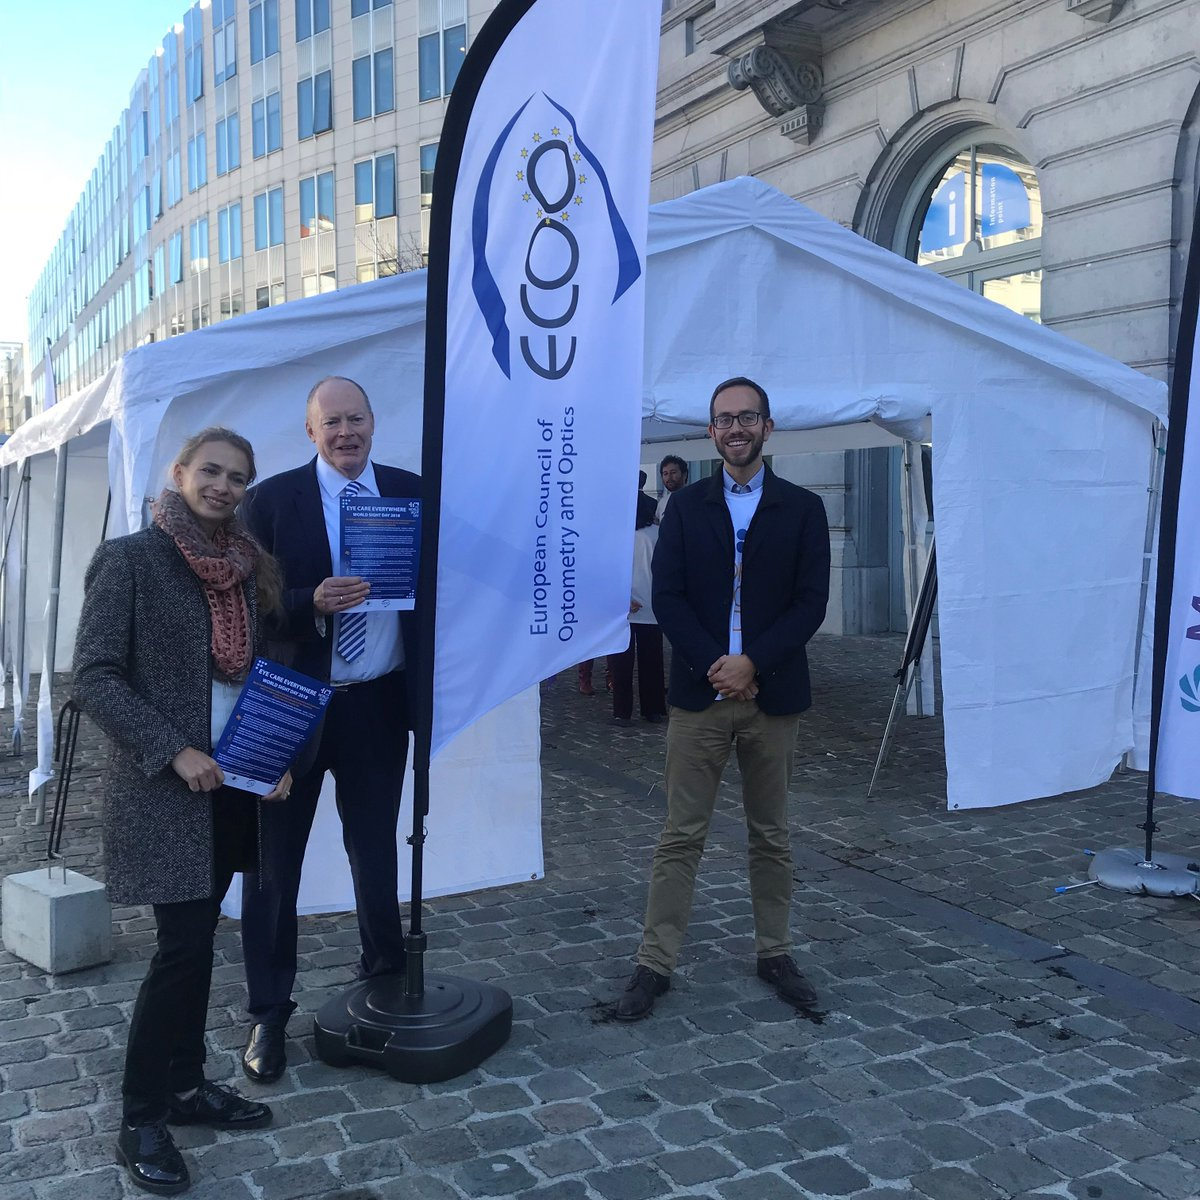 The #WorldSightDay Buzz Wire Challenge is in full swing! Can you beat us? Join us and @ECVtweets @eu40 &amp; @medtecheurope on Place du Luxembourg in Brussels!<br>http://pic.twitter.com/hHRA6ODmpW